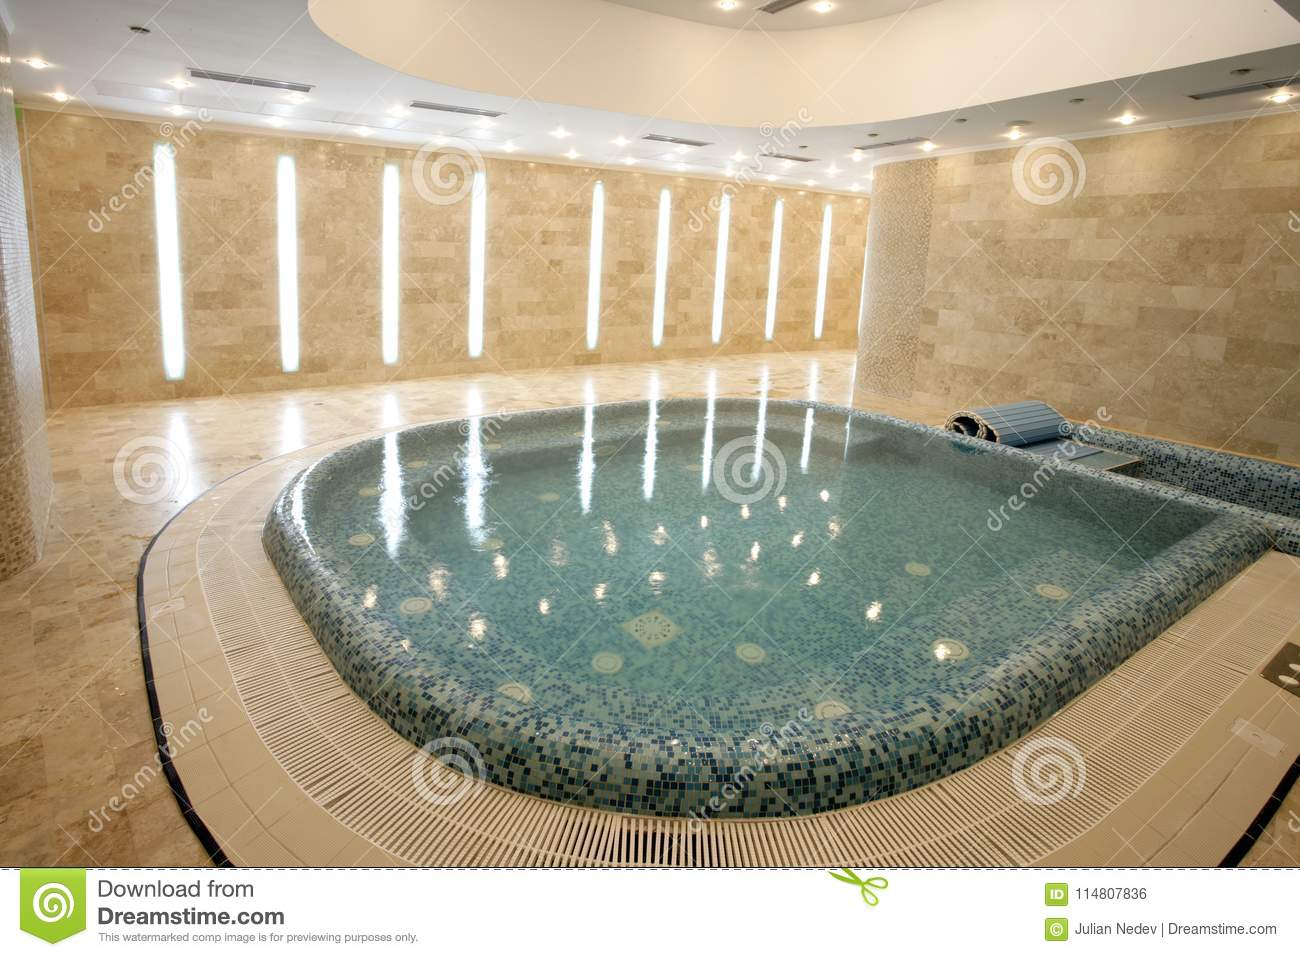 Jacuzzi pool in a modern hotel stock photo image of interior